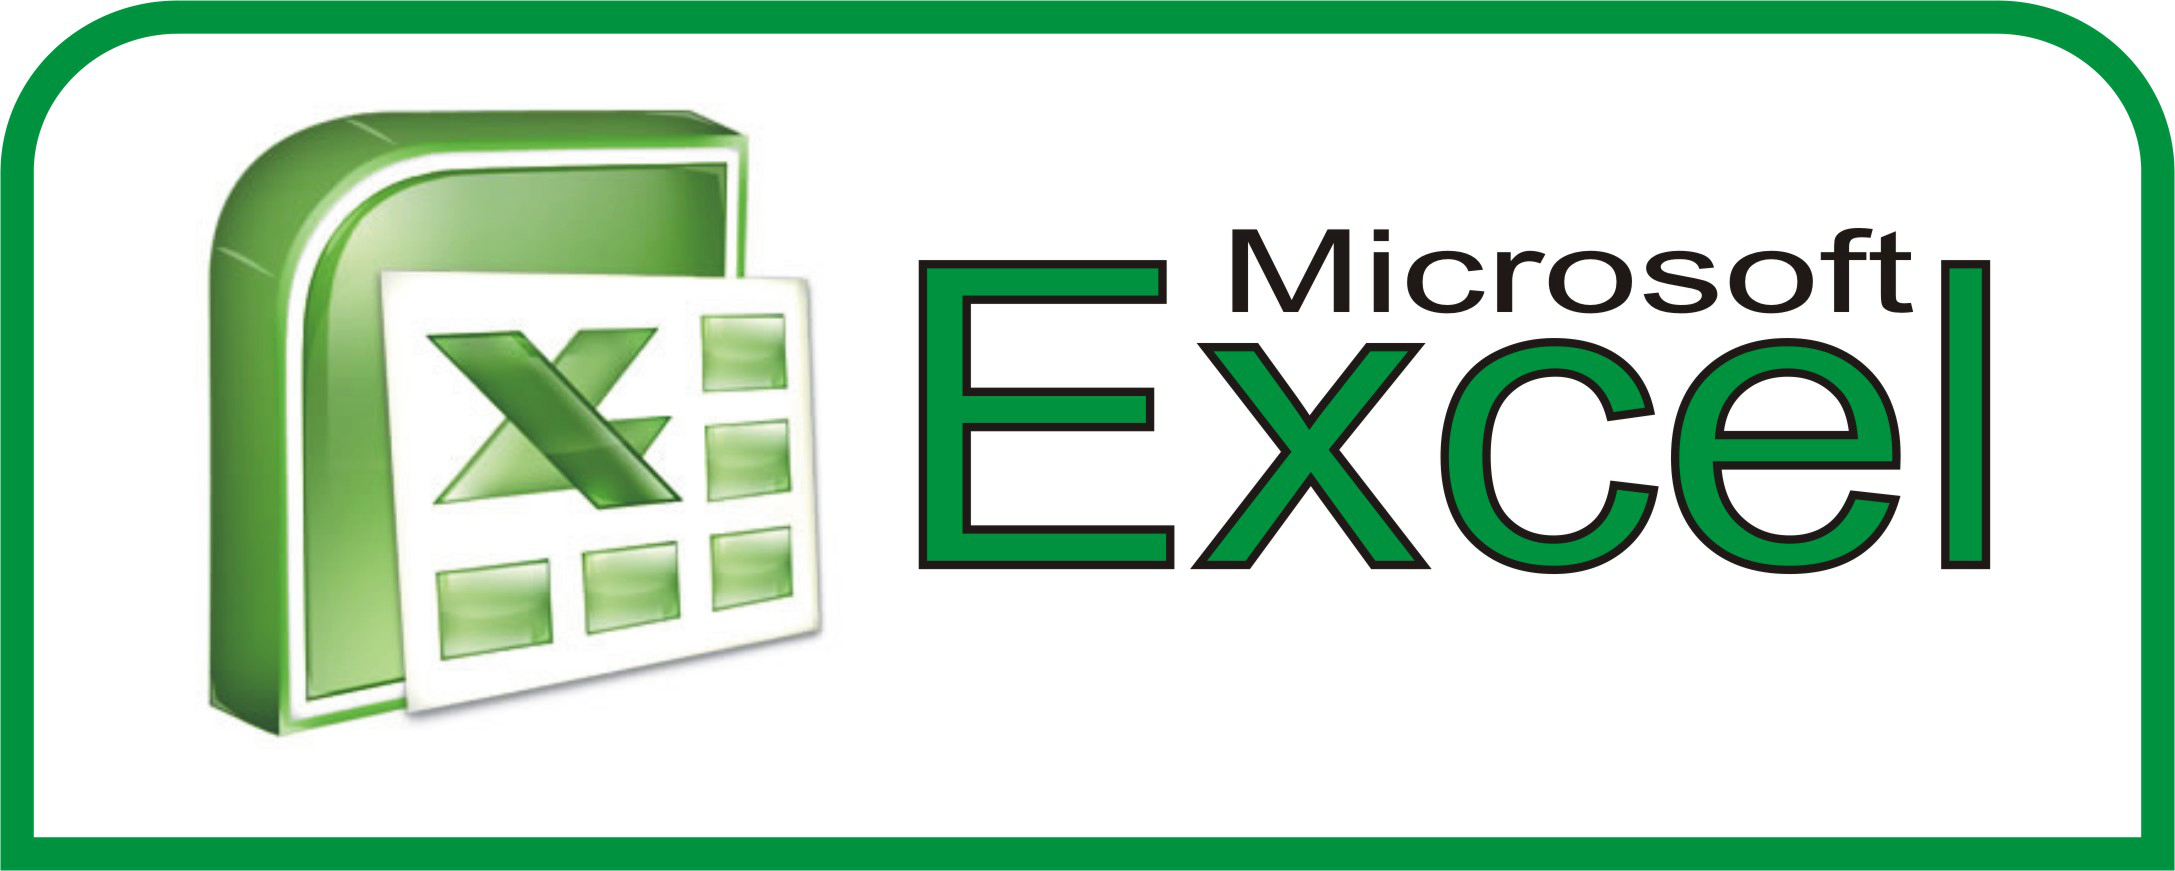 Ediblewildsus  Wonderful  Excel Shortcuts You Probably Didnt Know About  Techdissected With Heavenly Excel Regression Analysis Besides Excel Experience Furthermore Excel Subtract Time With Adorable Excel Uppercase Also How To Create An Excel Table In Addition Excel Checklist Template And Timeline Excel As Well As Can You Split A Cell In Excel Additionally What Is In Excel From Techdissectedcom With Ediblewildsus  Heavenly  Excel Shortcuts You Probably Didnt Know About  Techdissected With Adorable Excel Regression Analysis Besides Excel Experience Furthermore Excel Subtract Time And Wonderful Excel Uppercase Also How To Create An Excel Table In Addition Excel Checklist Template From Techdissectedcom